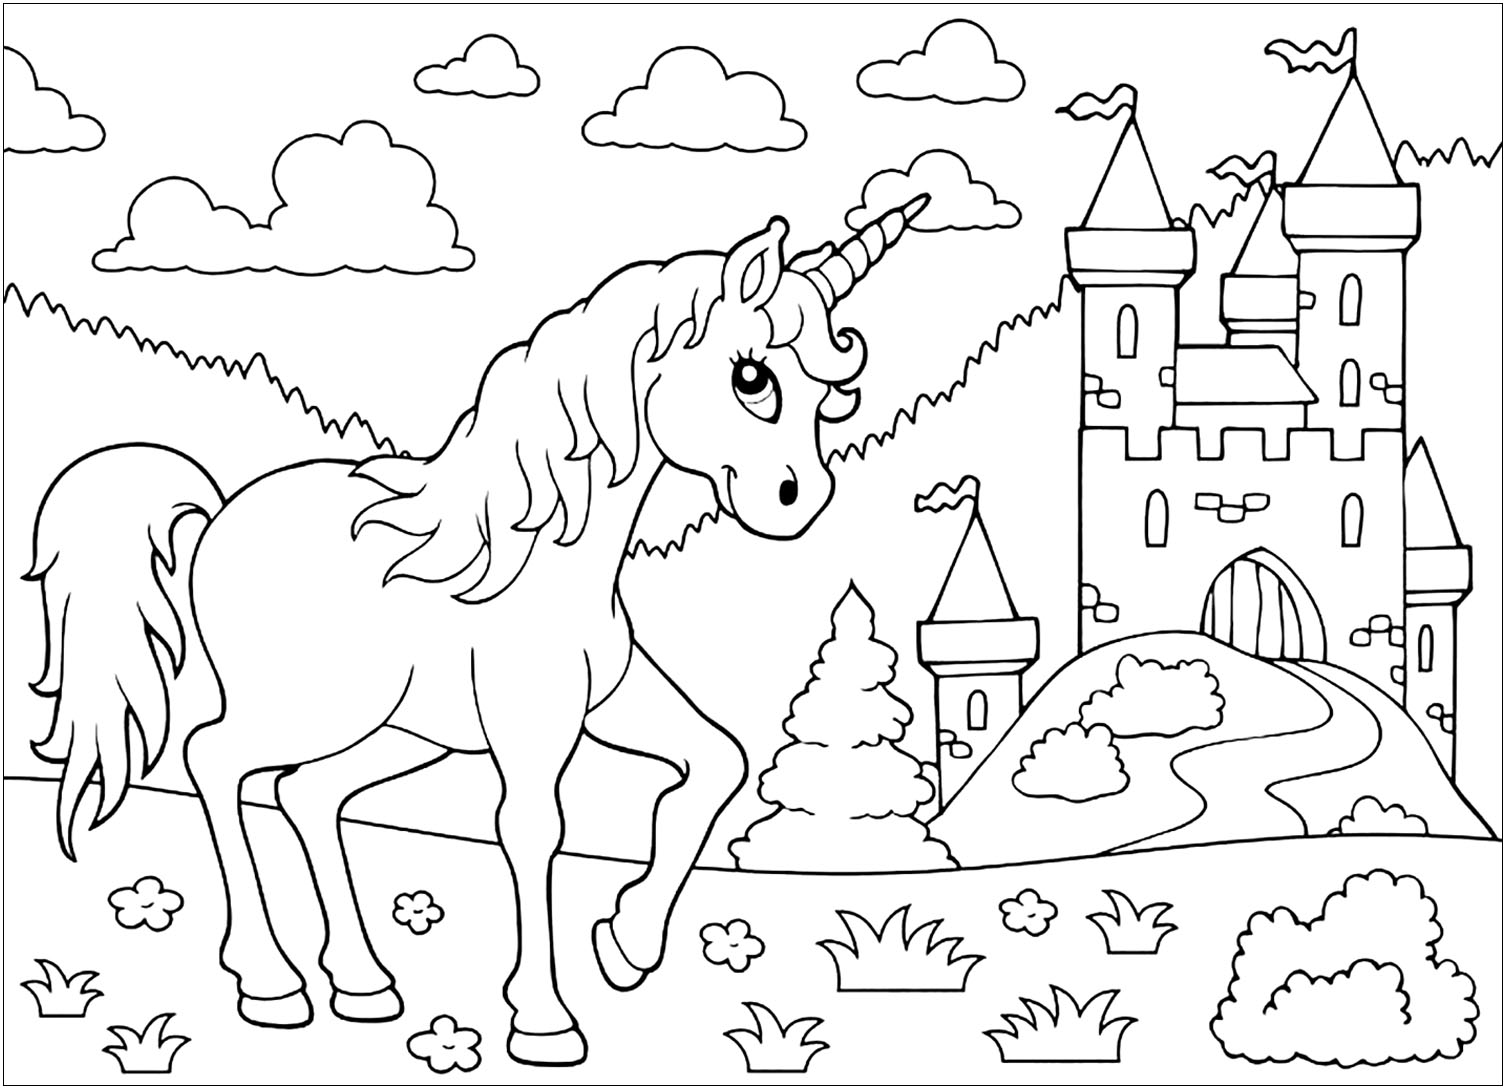 coloring unicorn kids drawing unicorns free to color for kids unicorns kids coloring pages kids coloring unicorn drawing